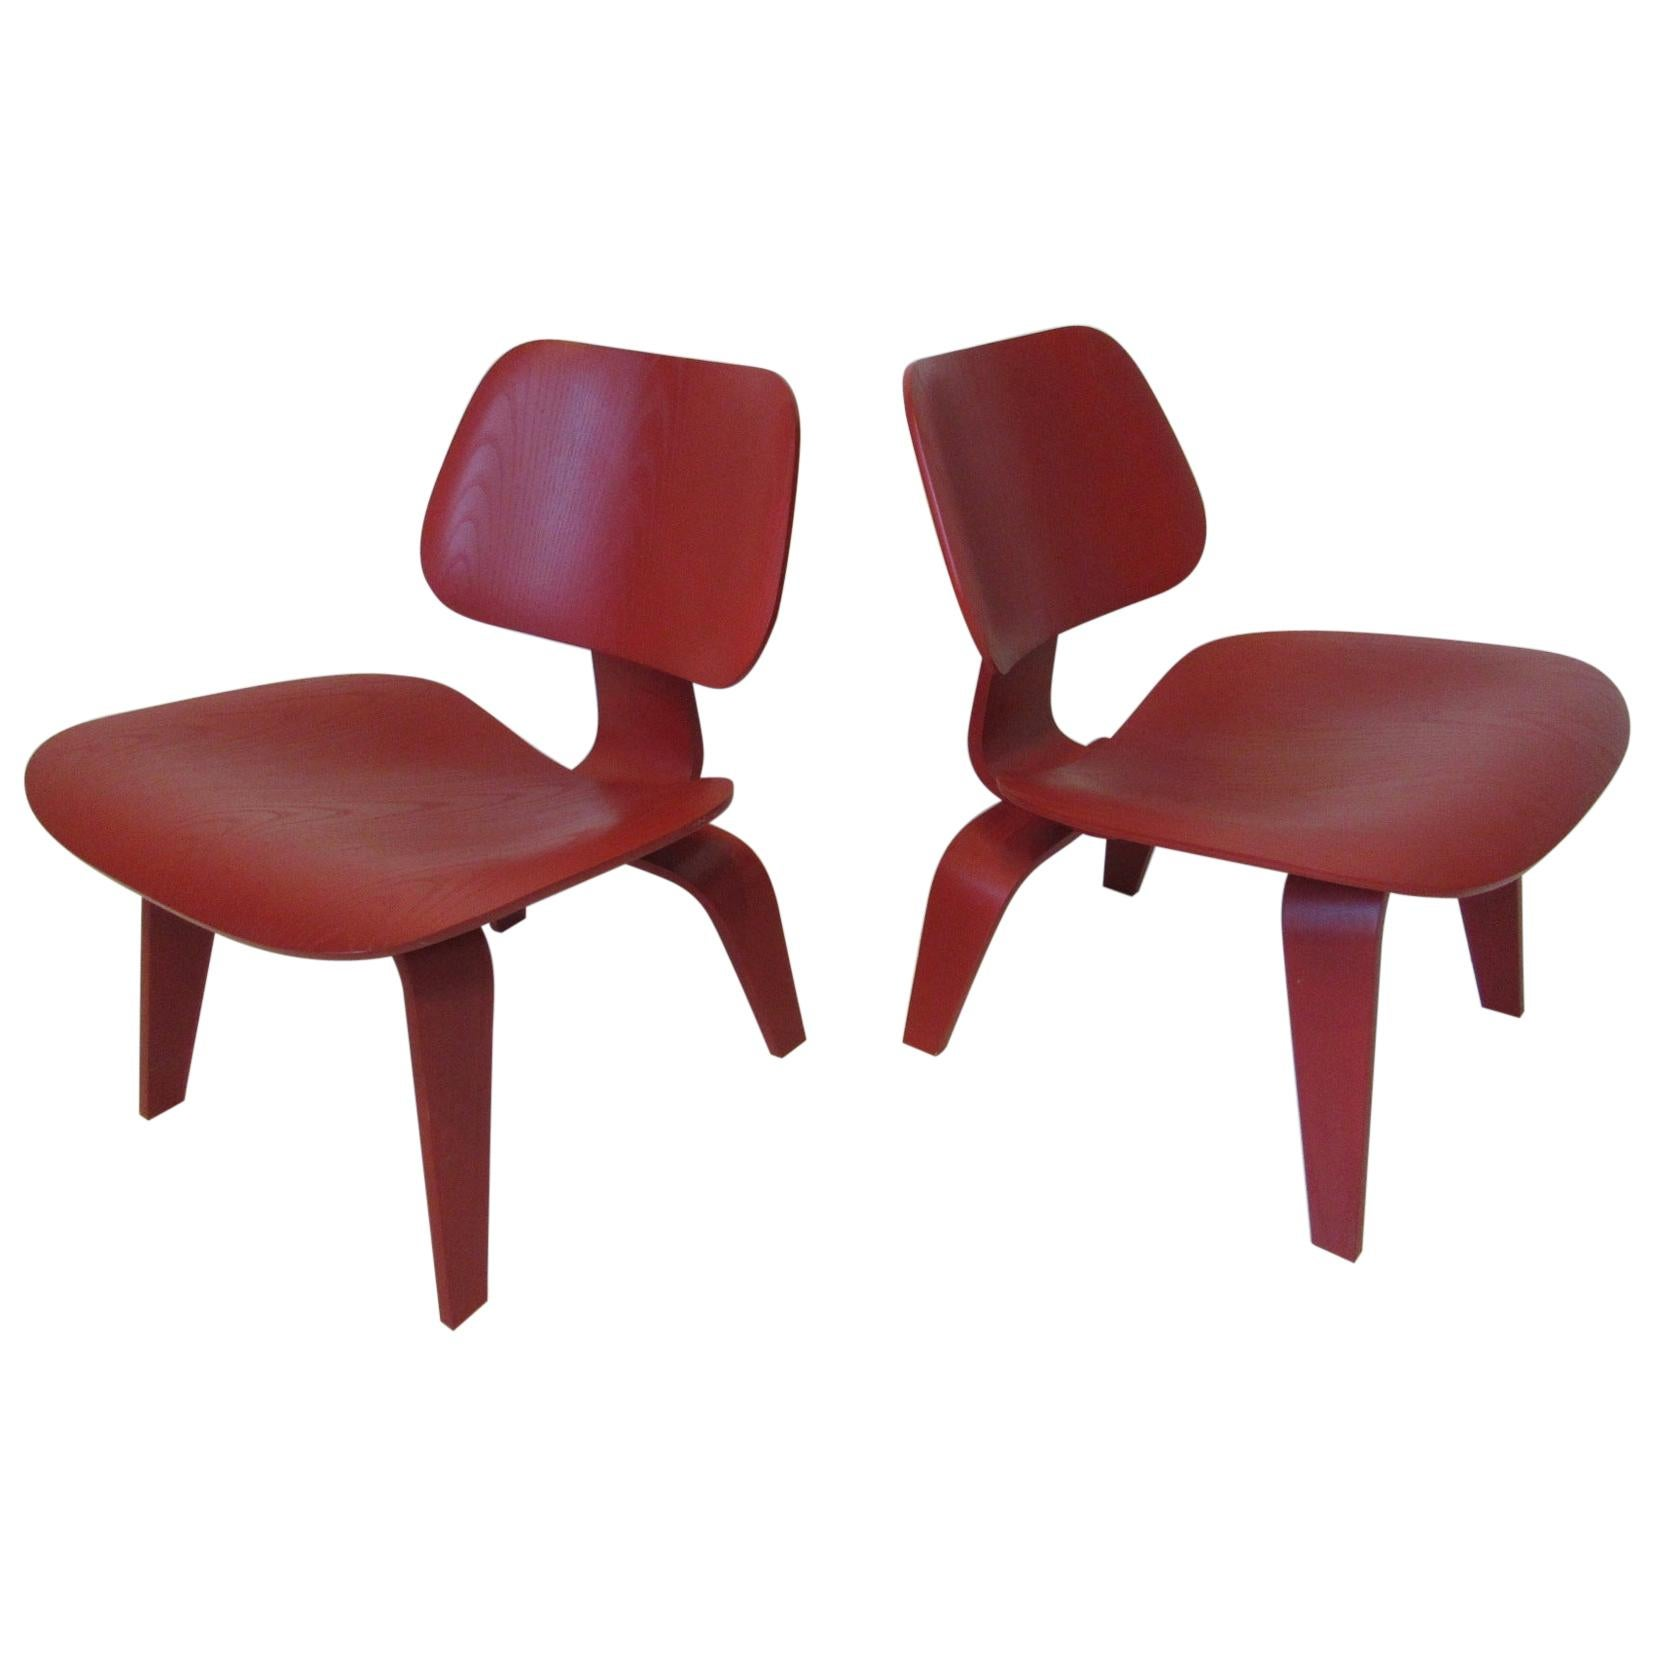 Eames Red LCW Lounge Chairs for Herman Miller